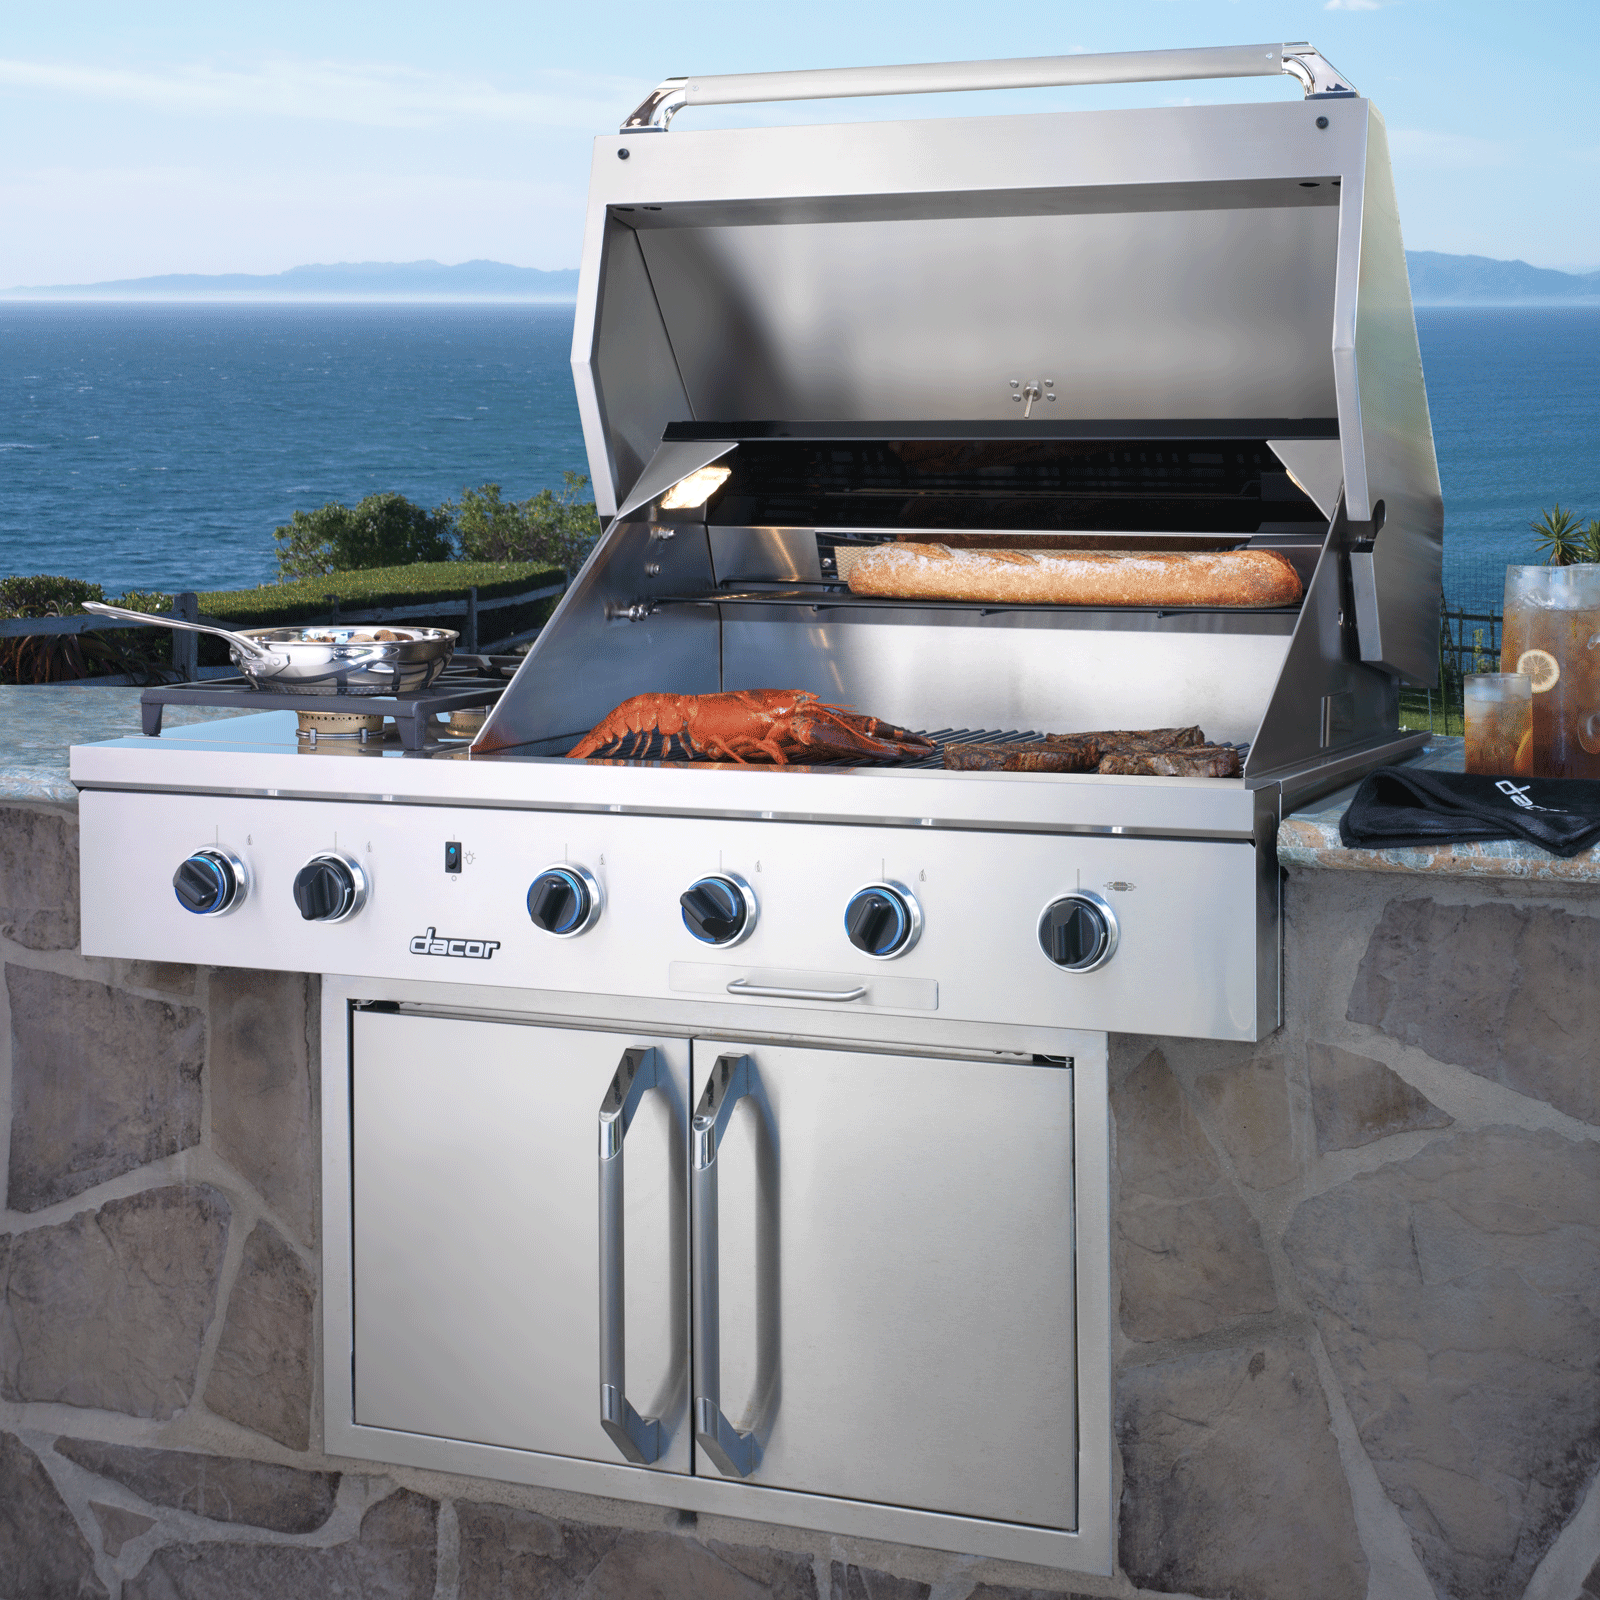 "Dacor Heritage 52"" Outdoor Grill, in Stainless Steel with Chrome Trim, for use with Natural Gas"